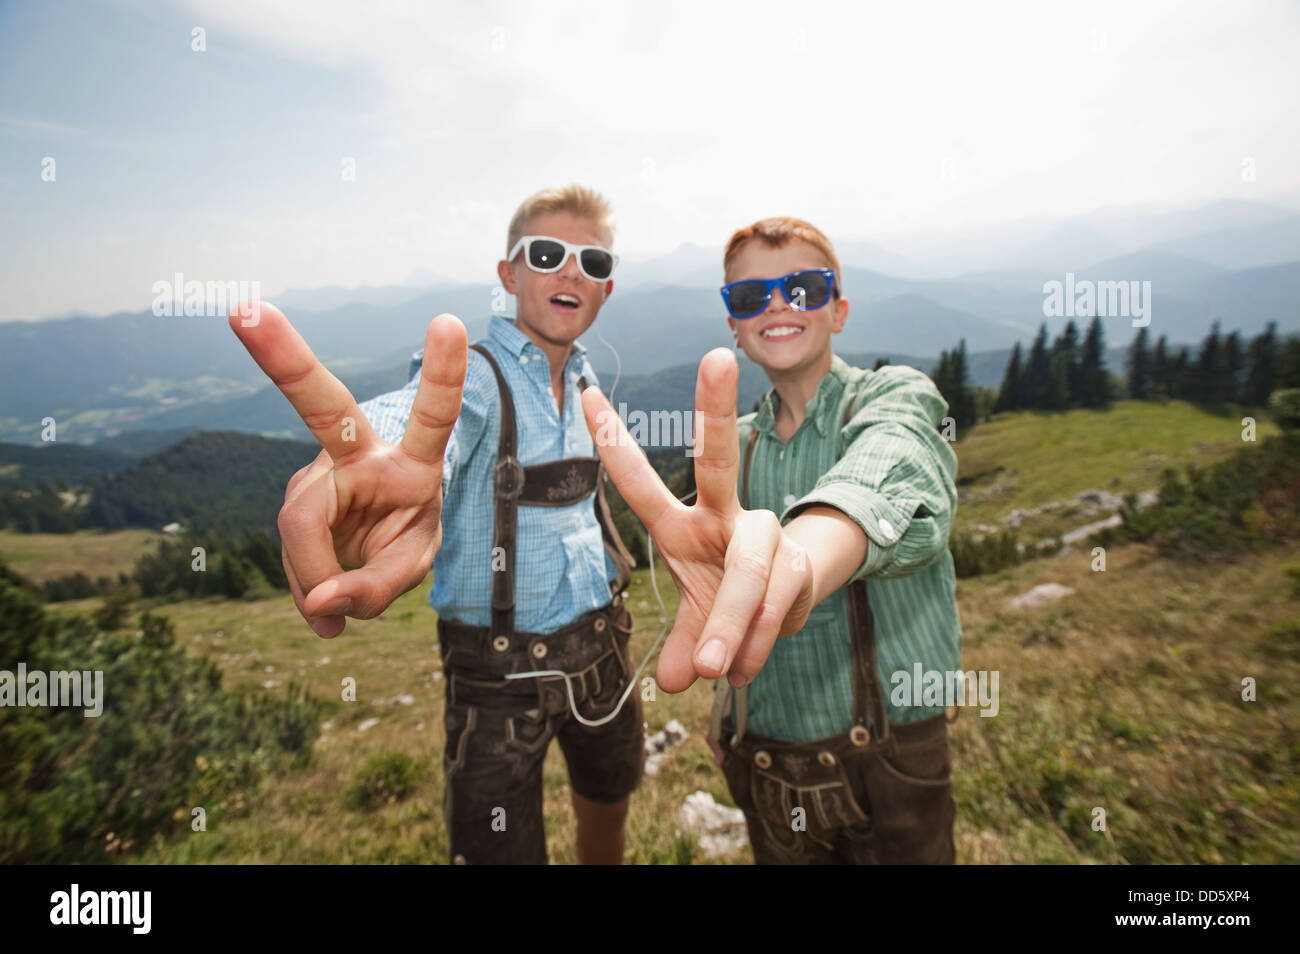 Germany, Bavaria, Two boys with sunglasses making gestures in mountains - Stock Image